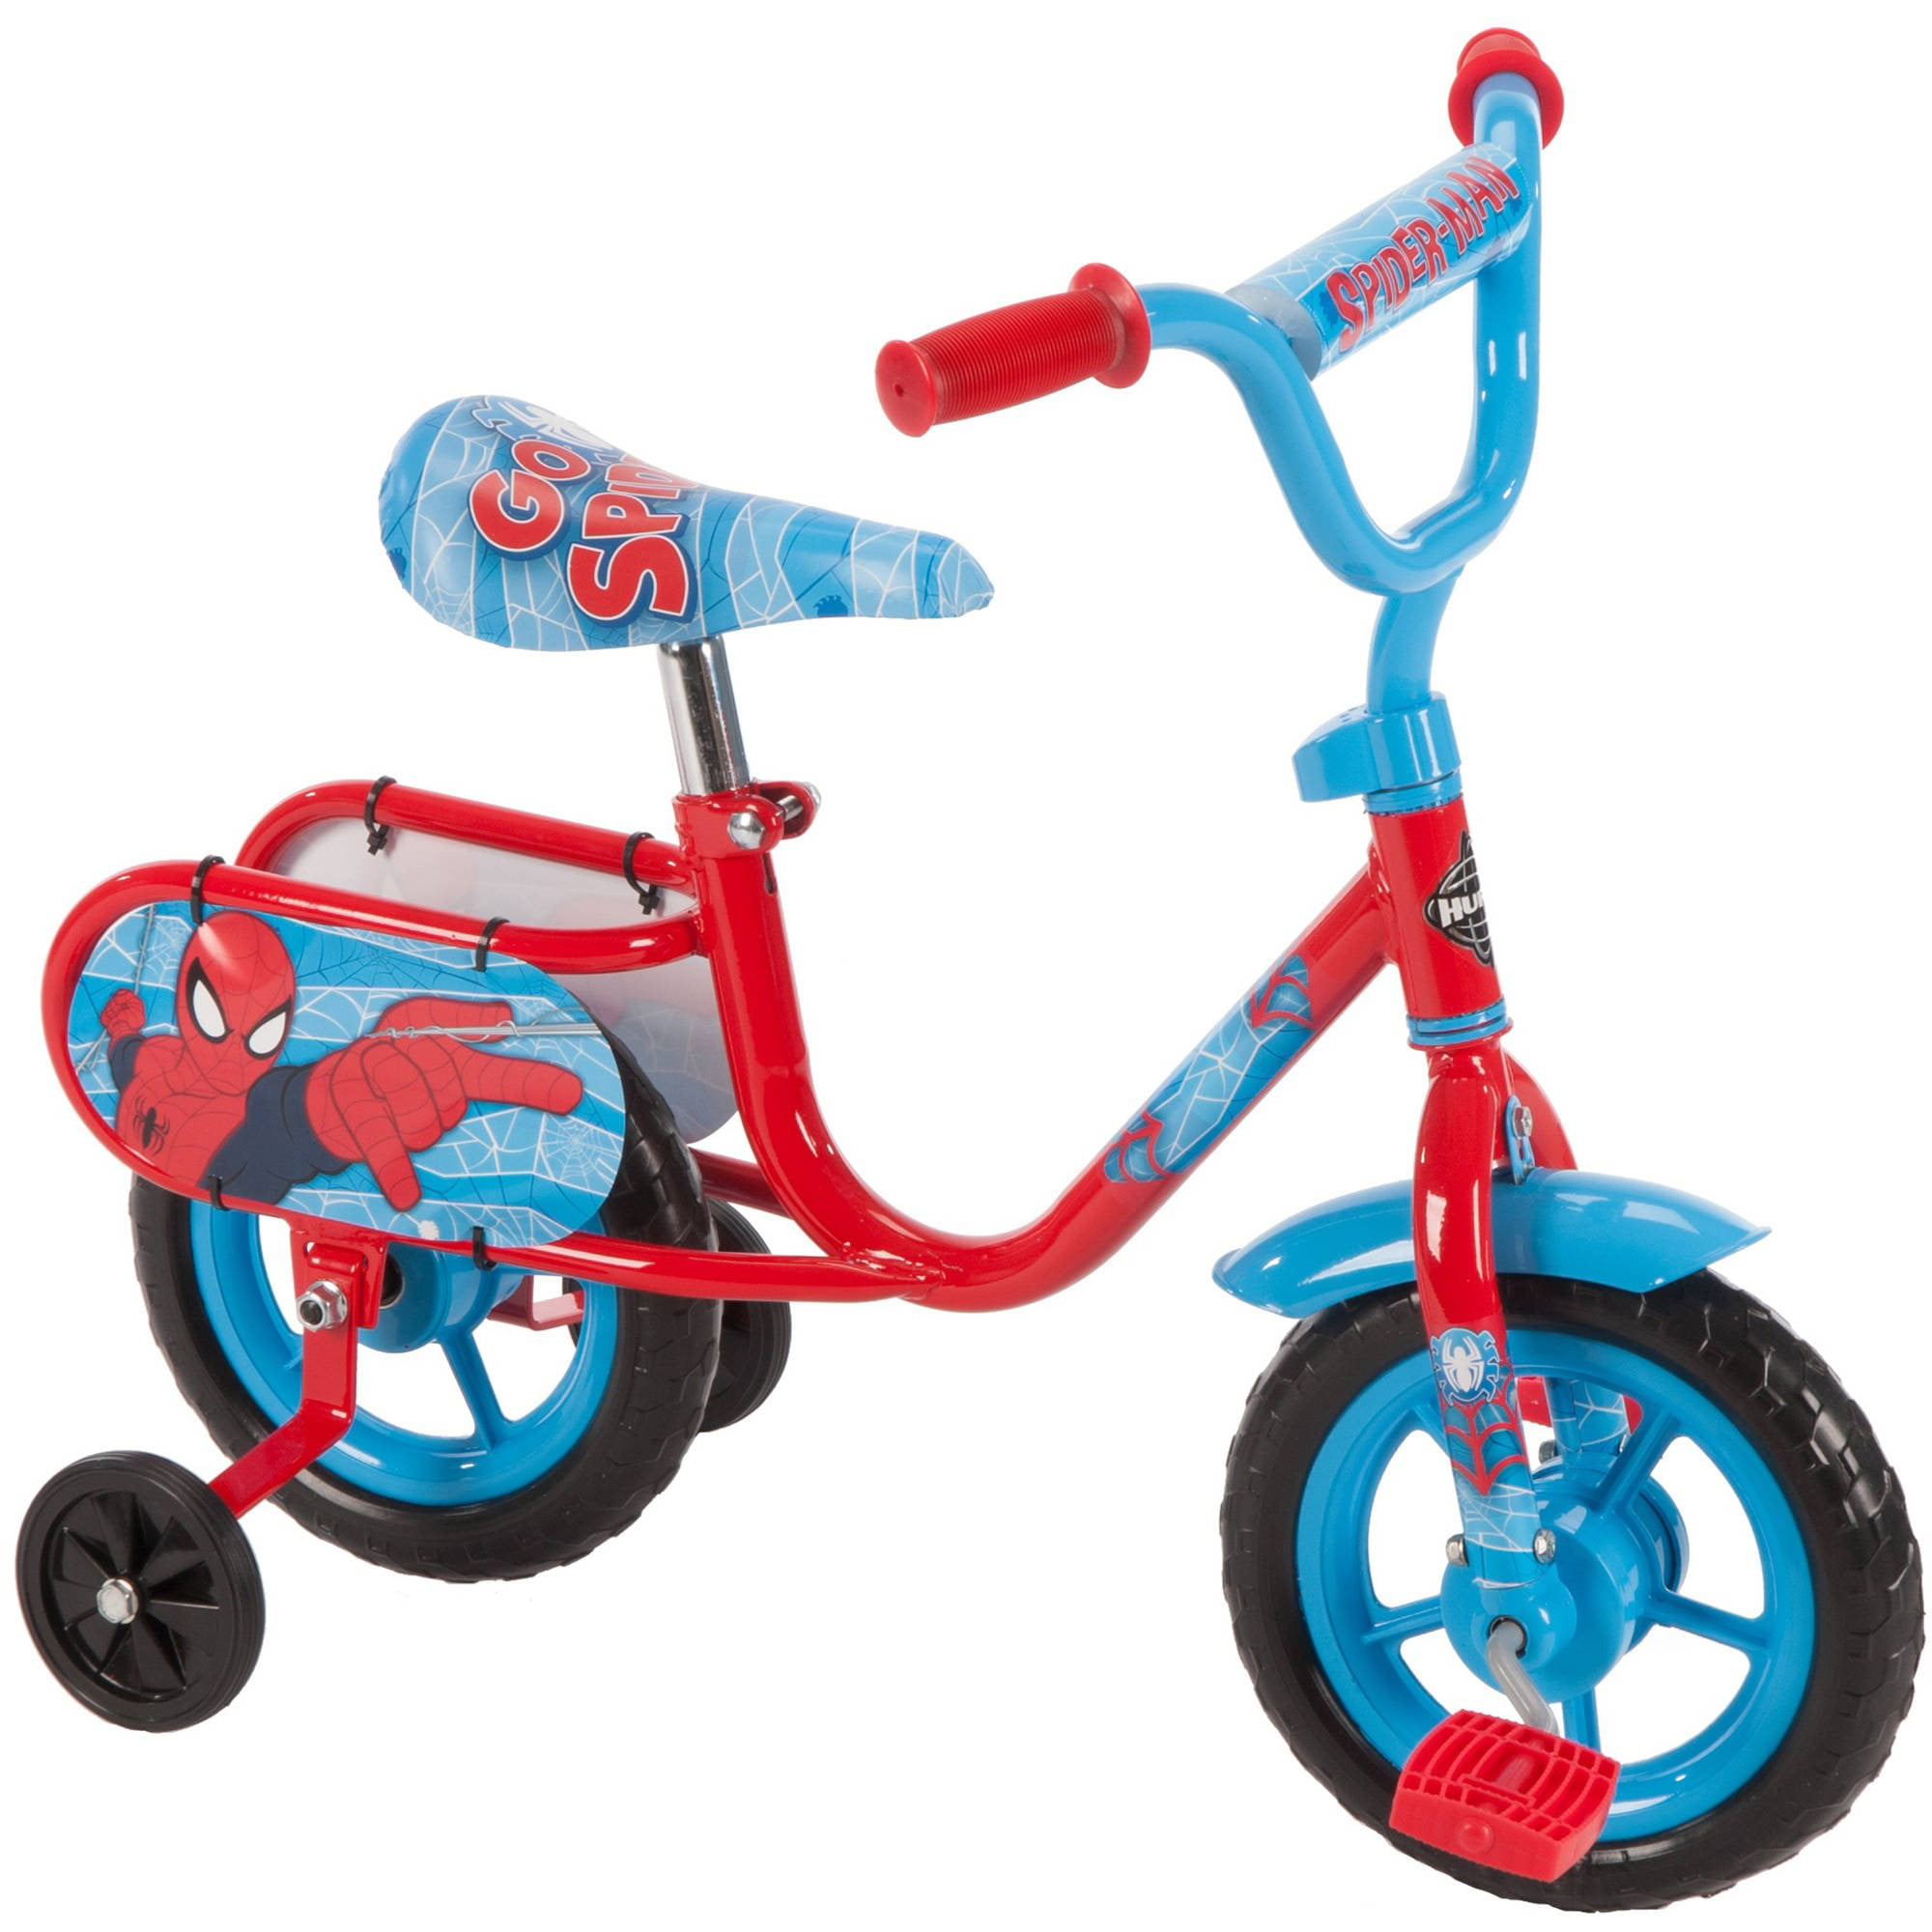 Marvel Spider-Man 10� Boys Pedal Cycle Bike for Toddlers, by Huffy by Huffy